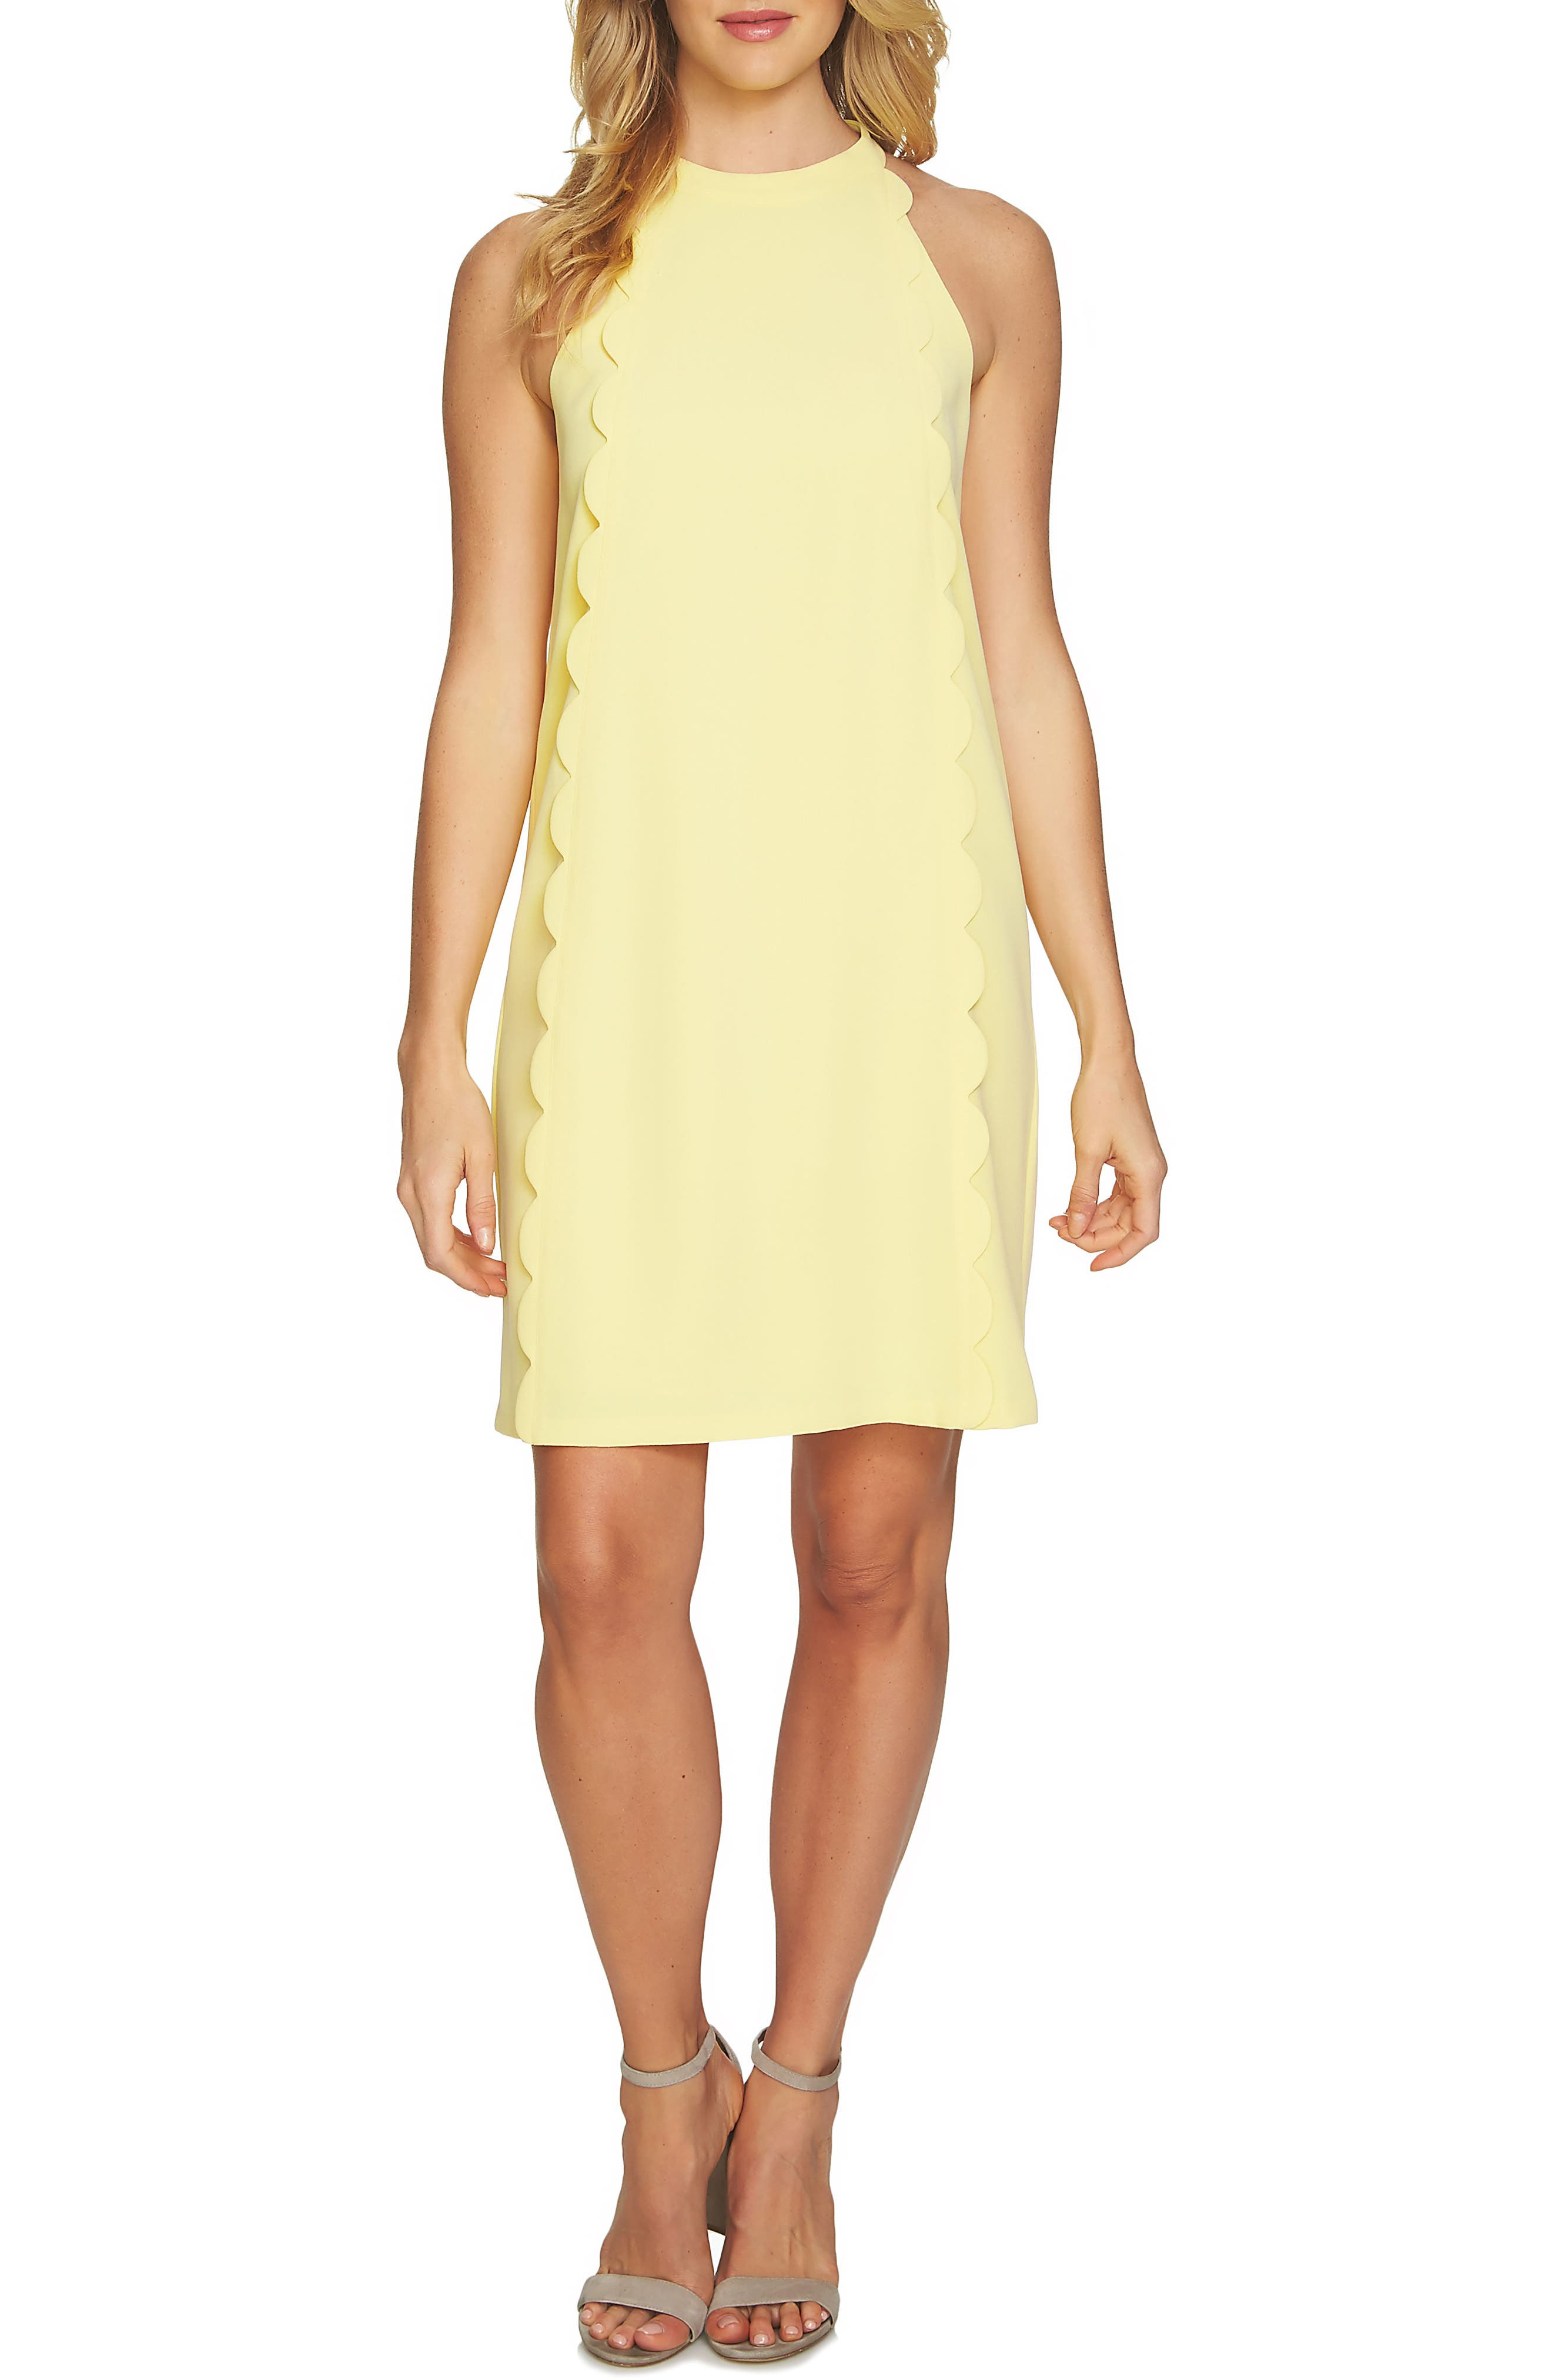 Backless cocktail dress bloomingdales shoes